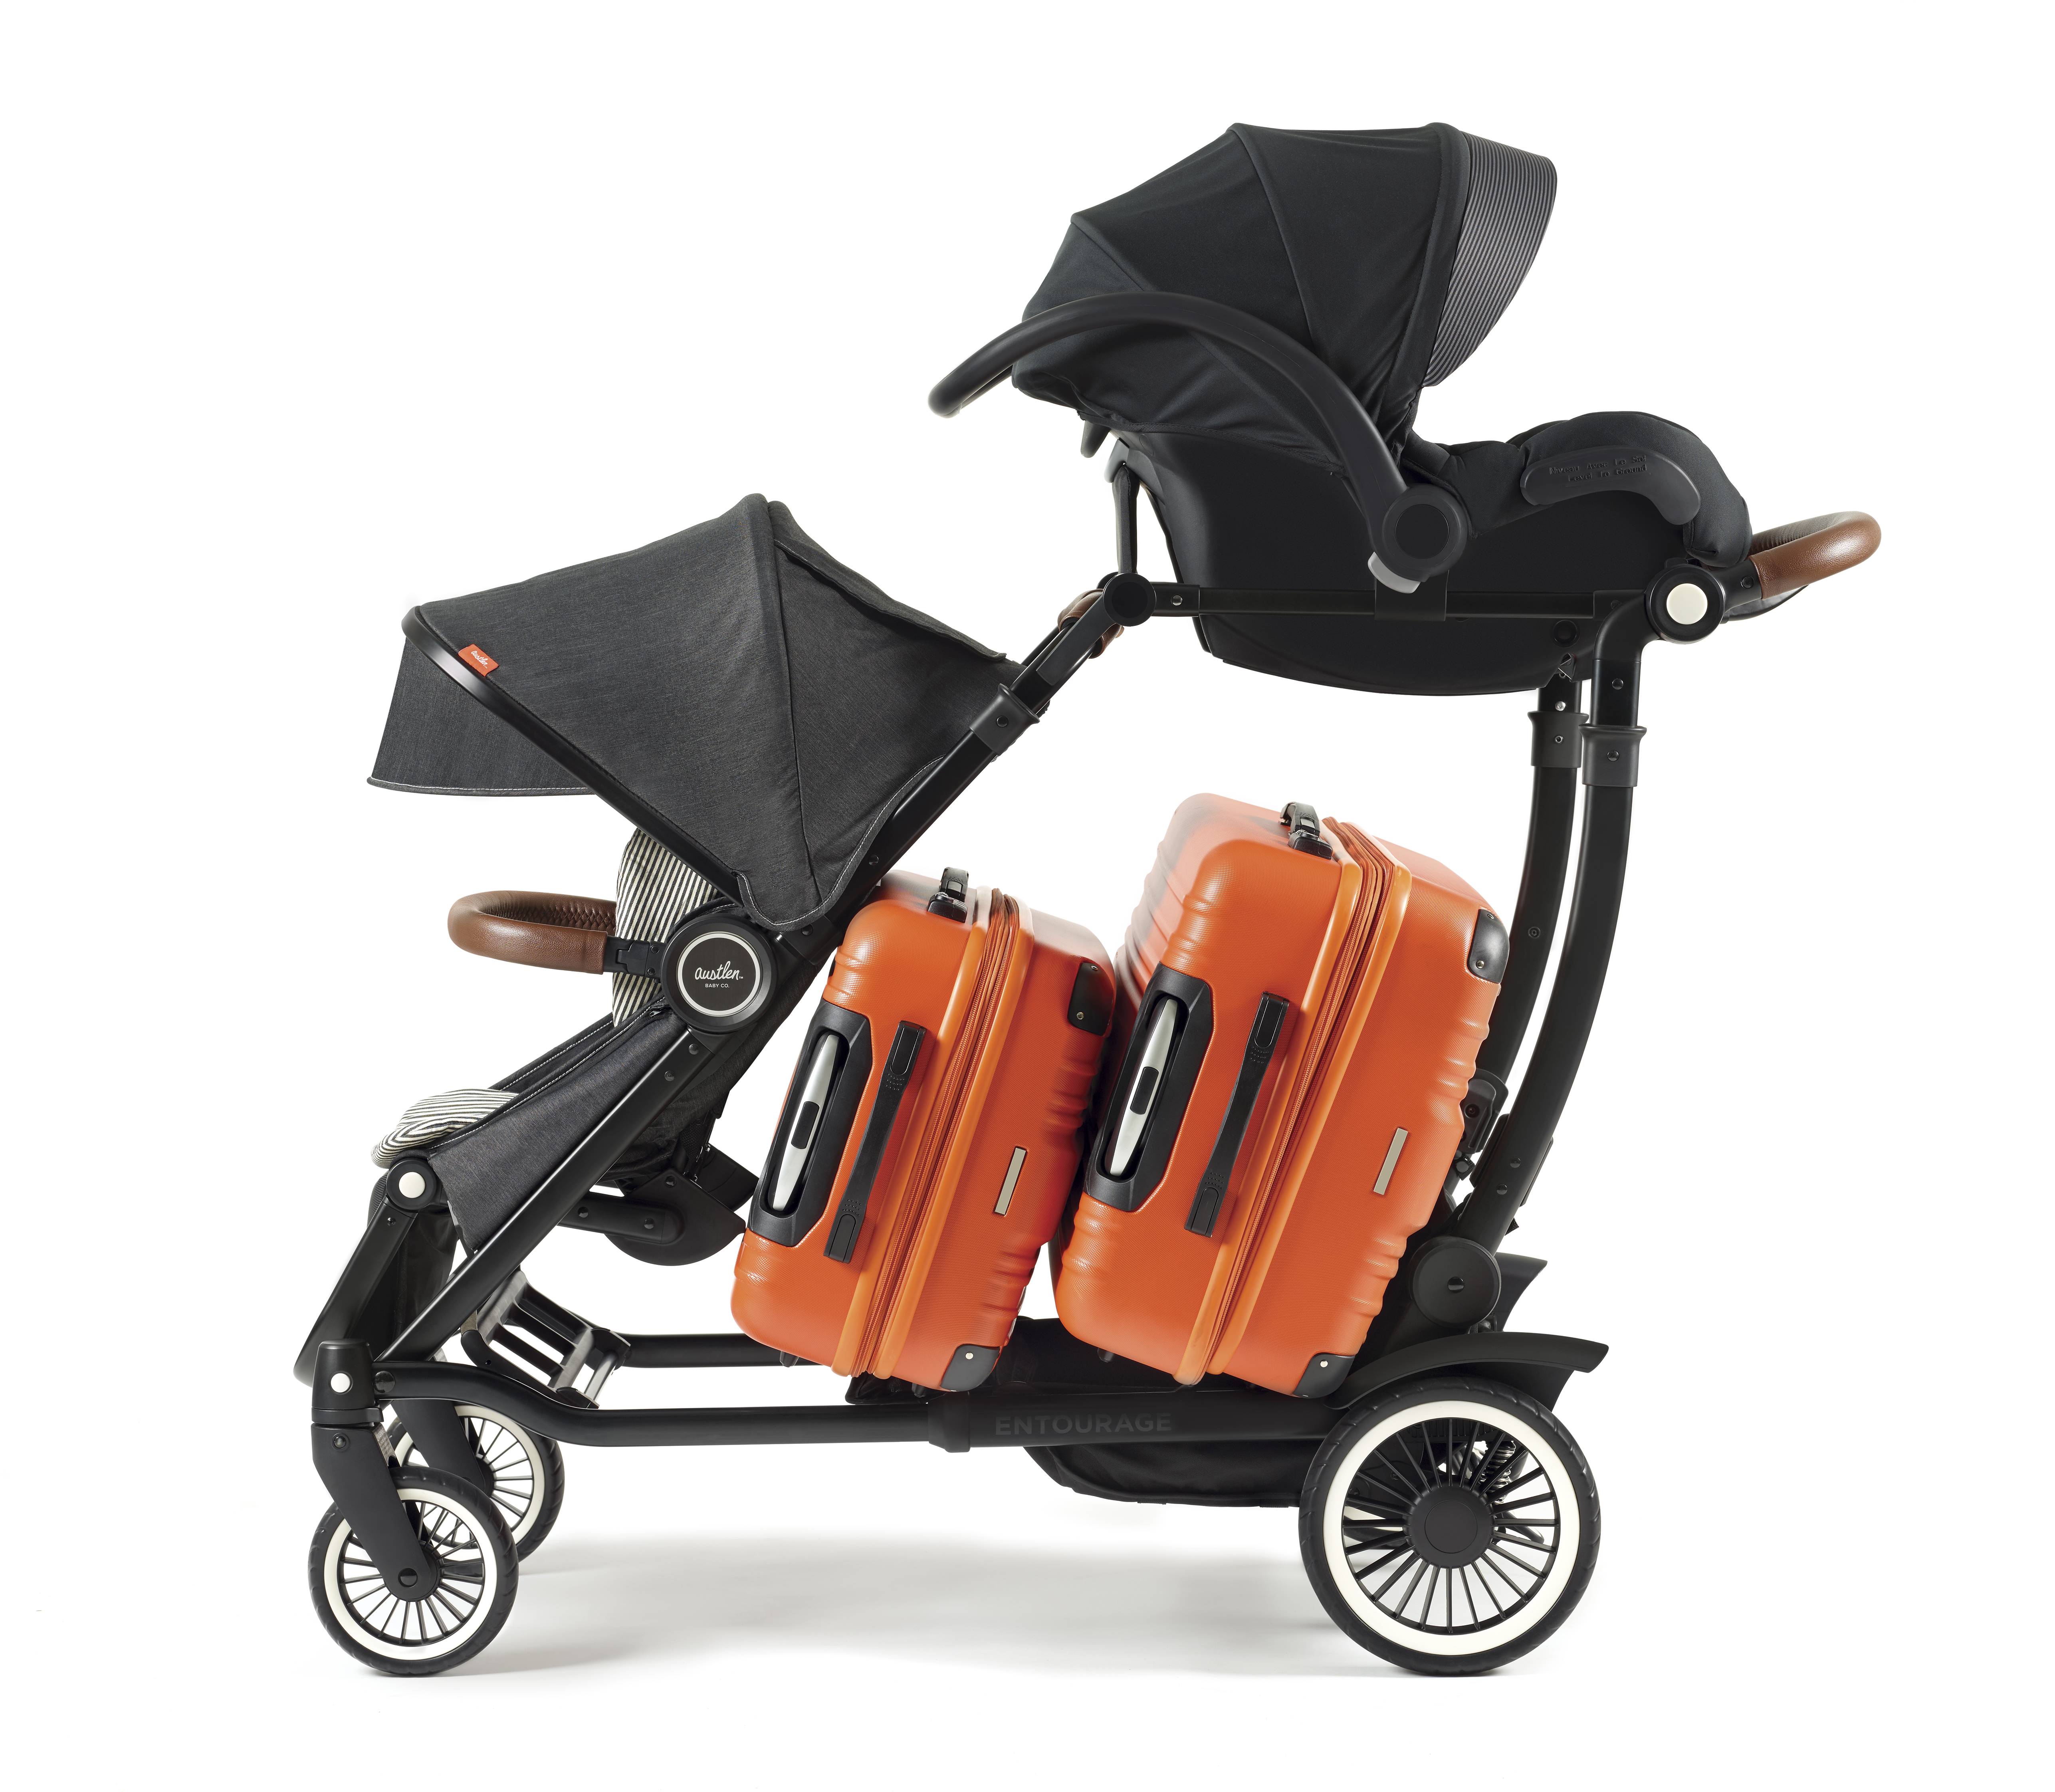 74135adbb 7 questions to ask yourself before buying a double stroller - Baby Products  Mom